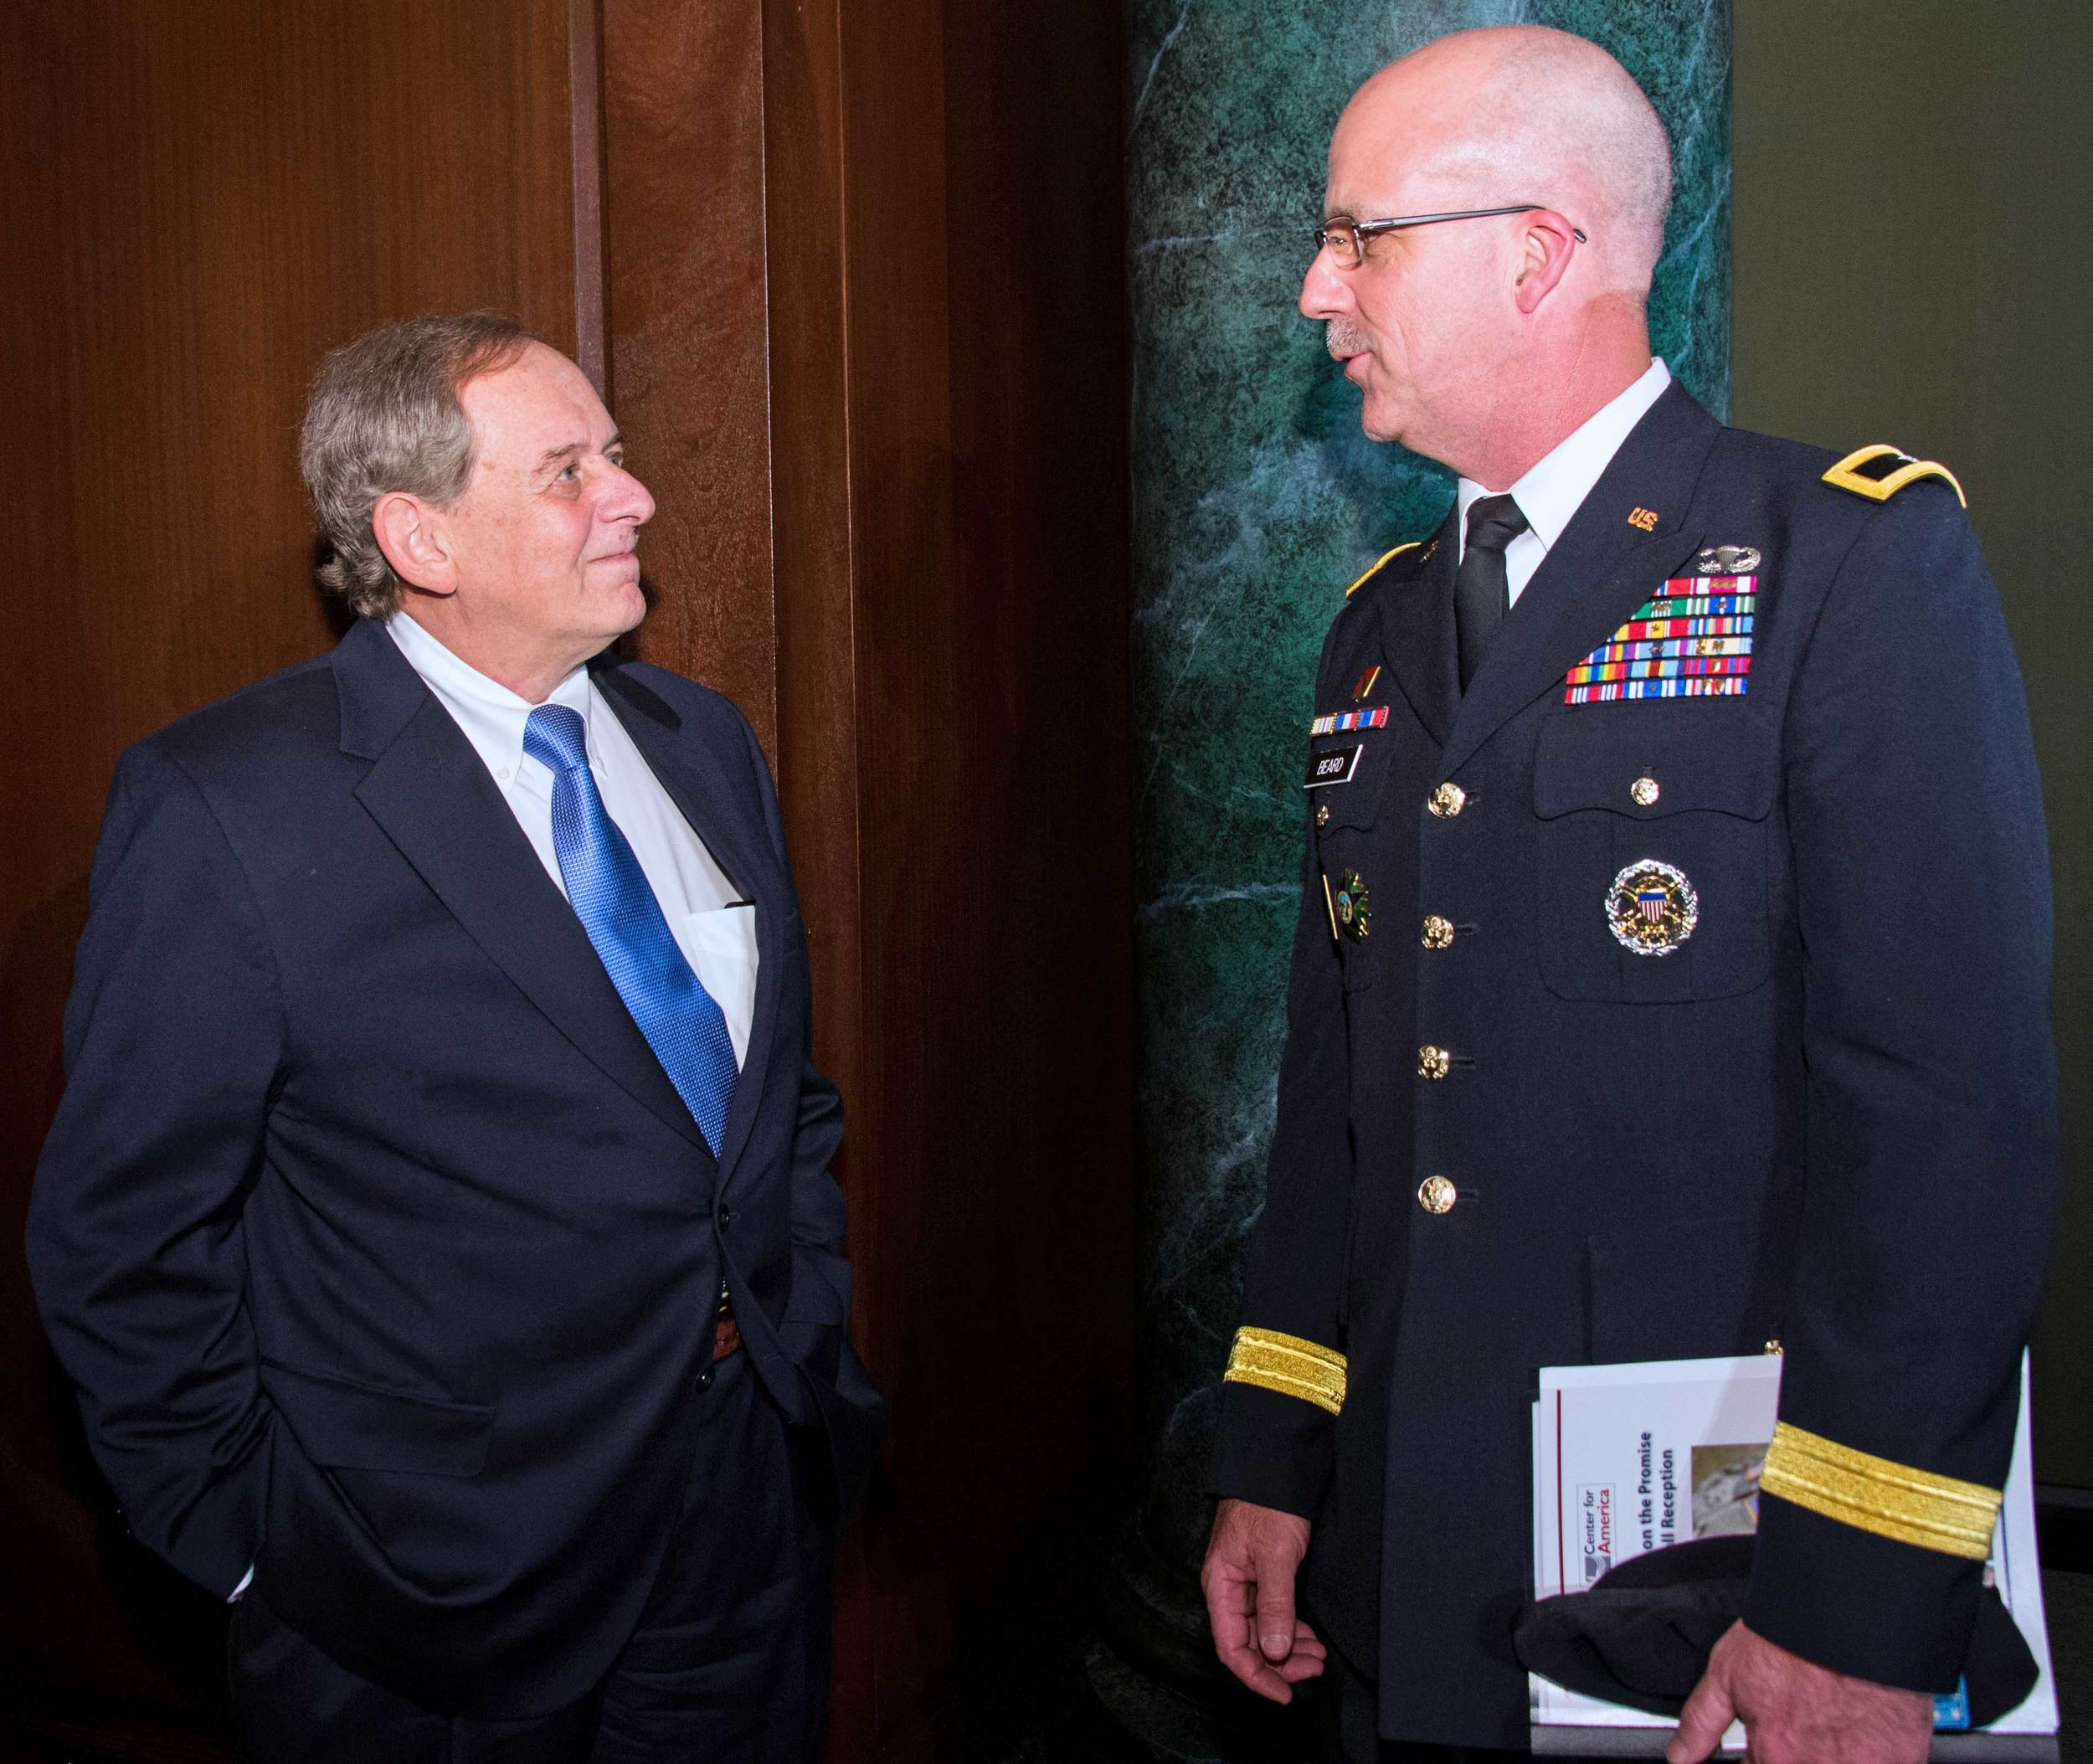 Steve Nowlan, Center for America and Brigadier General Kenneth Beard, North Carolina National Guard